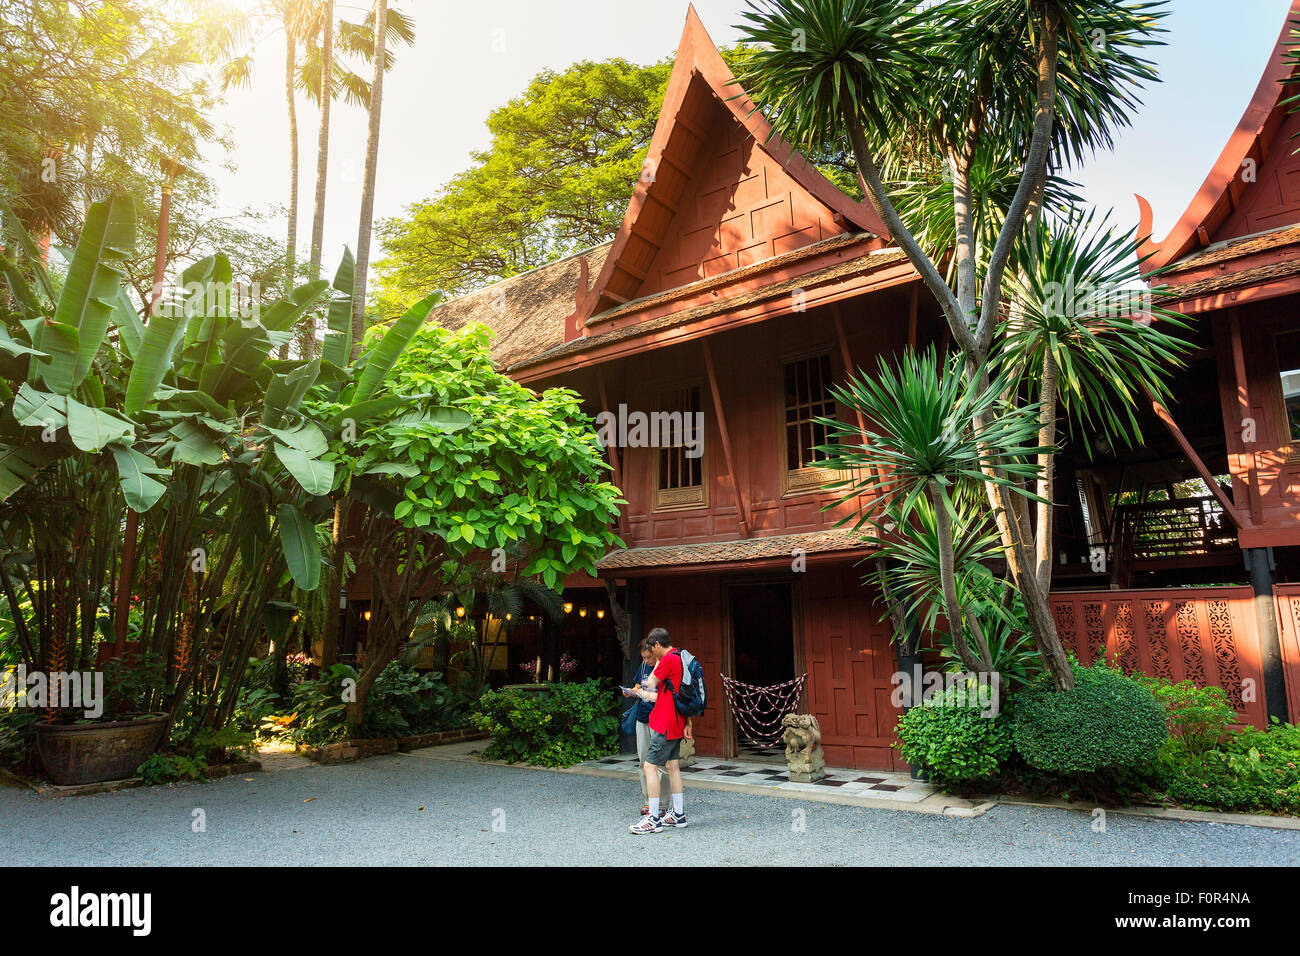 Thailand, Bangkok, Jim Thompson 's house - Stock Image